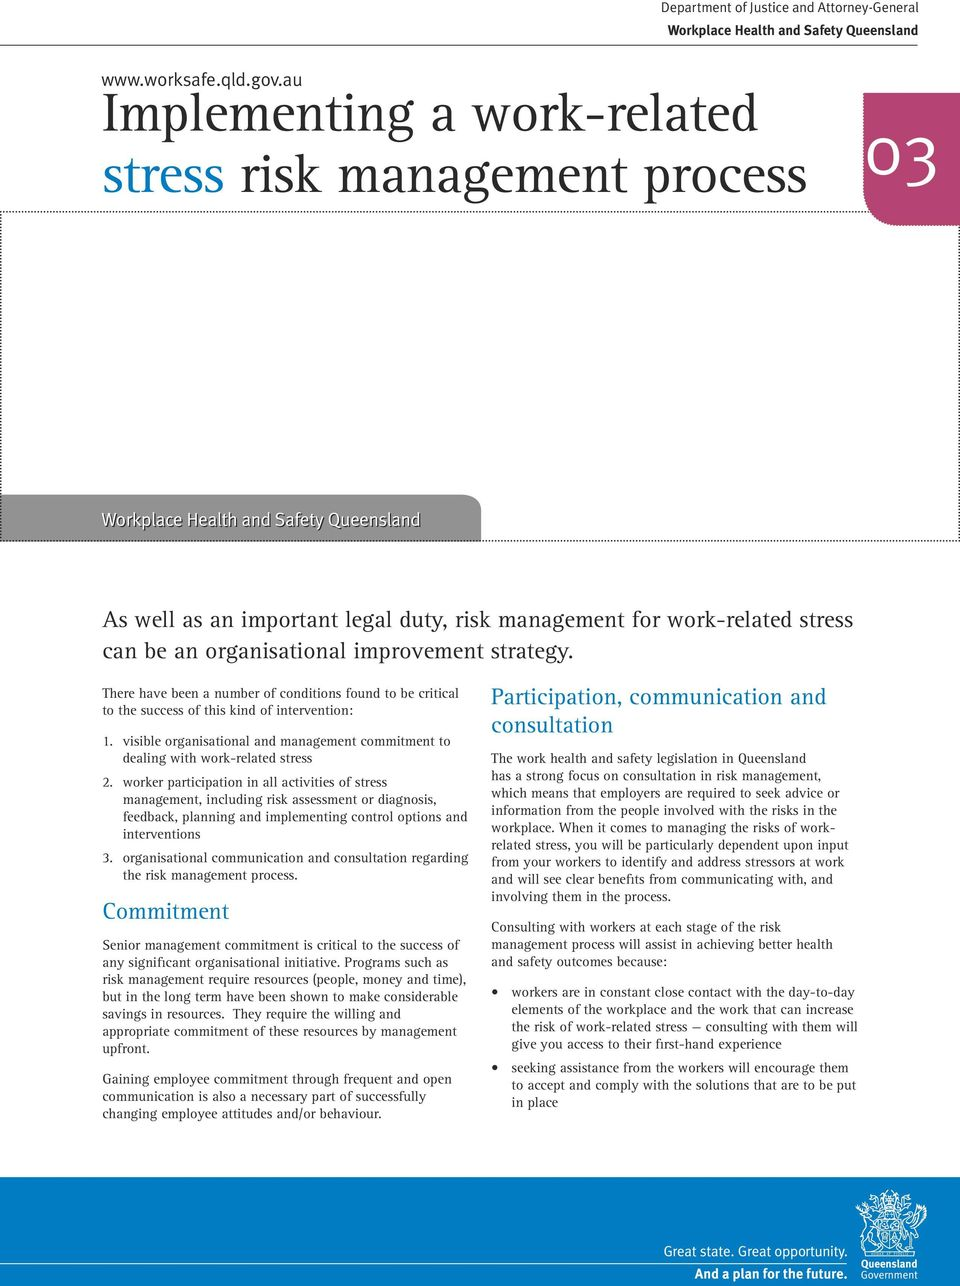 There have been a number of conditions found to be critical to the success of this kind of intervention: 1. visible organisational and management commitment to dealing with work-related stress 2.